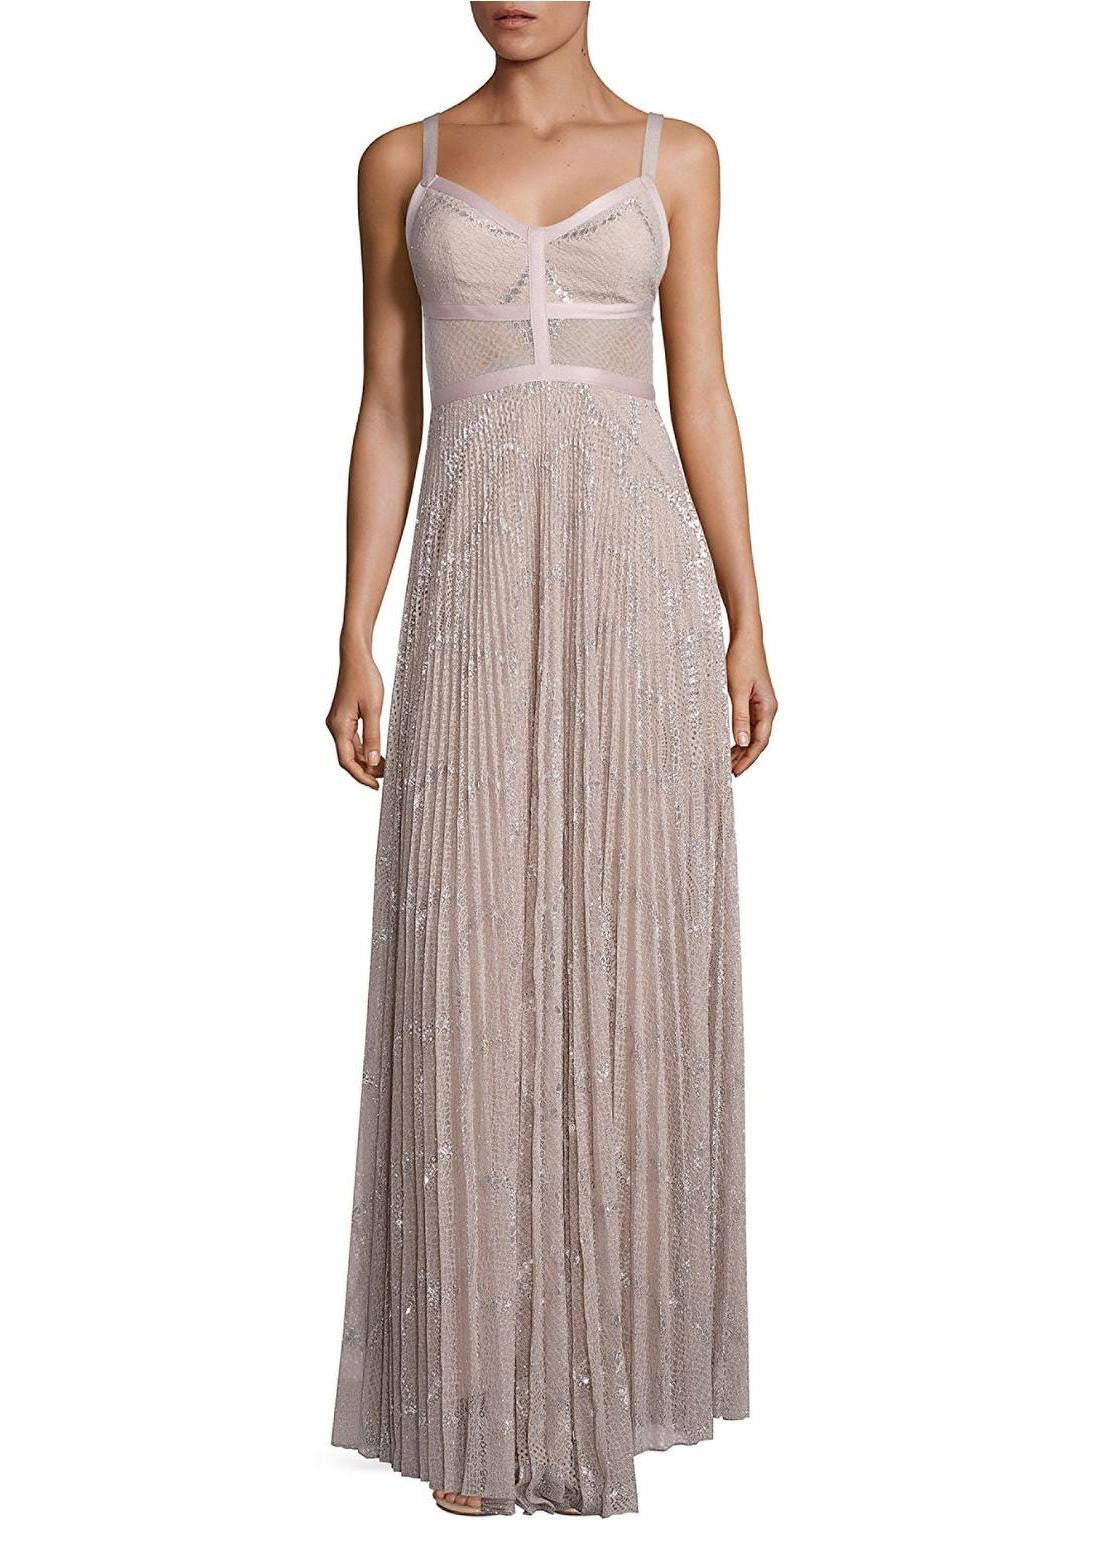 Alexis isabella lace gown silver blush